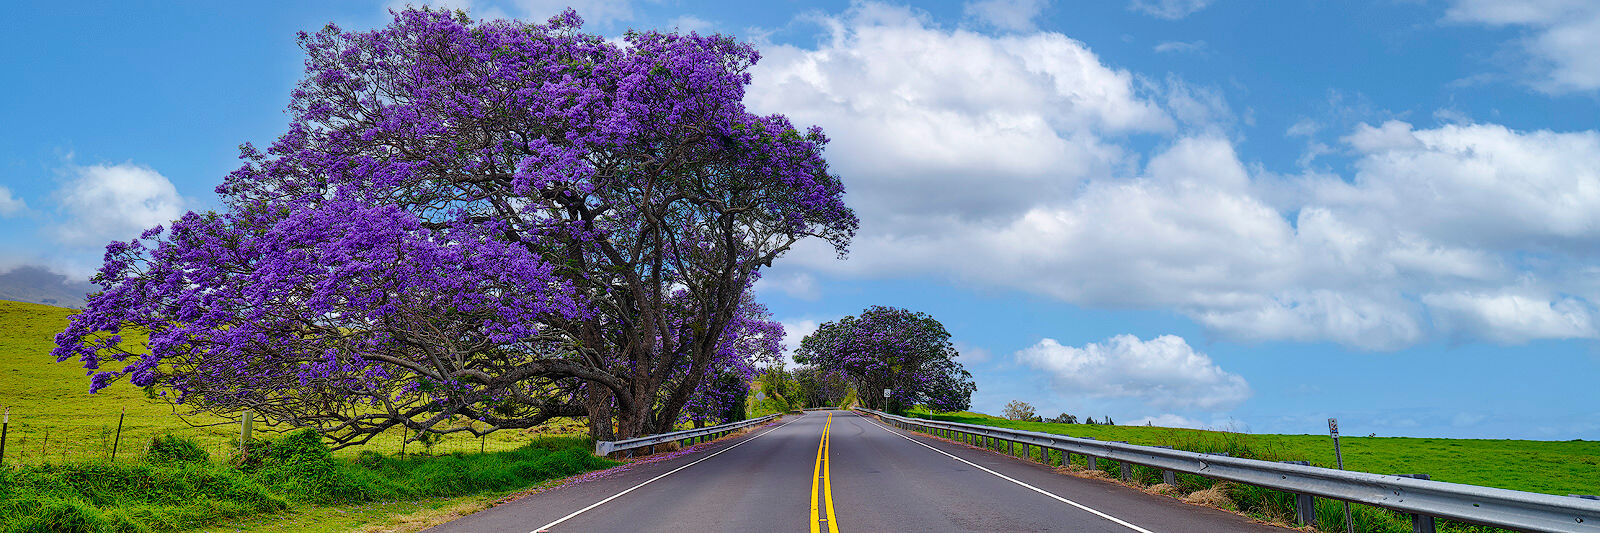 panoramic view of jacaranada trees along side of a two lane highway in upcountry on the Hawaiian island of Maui.